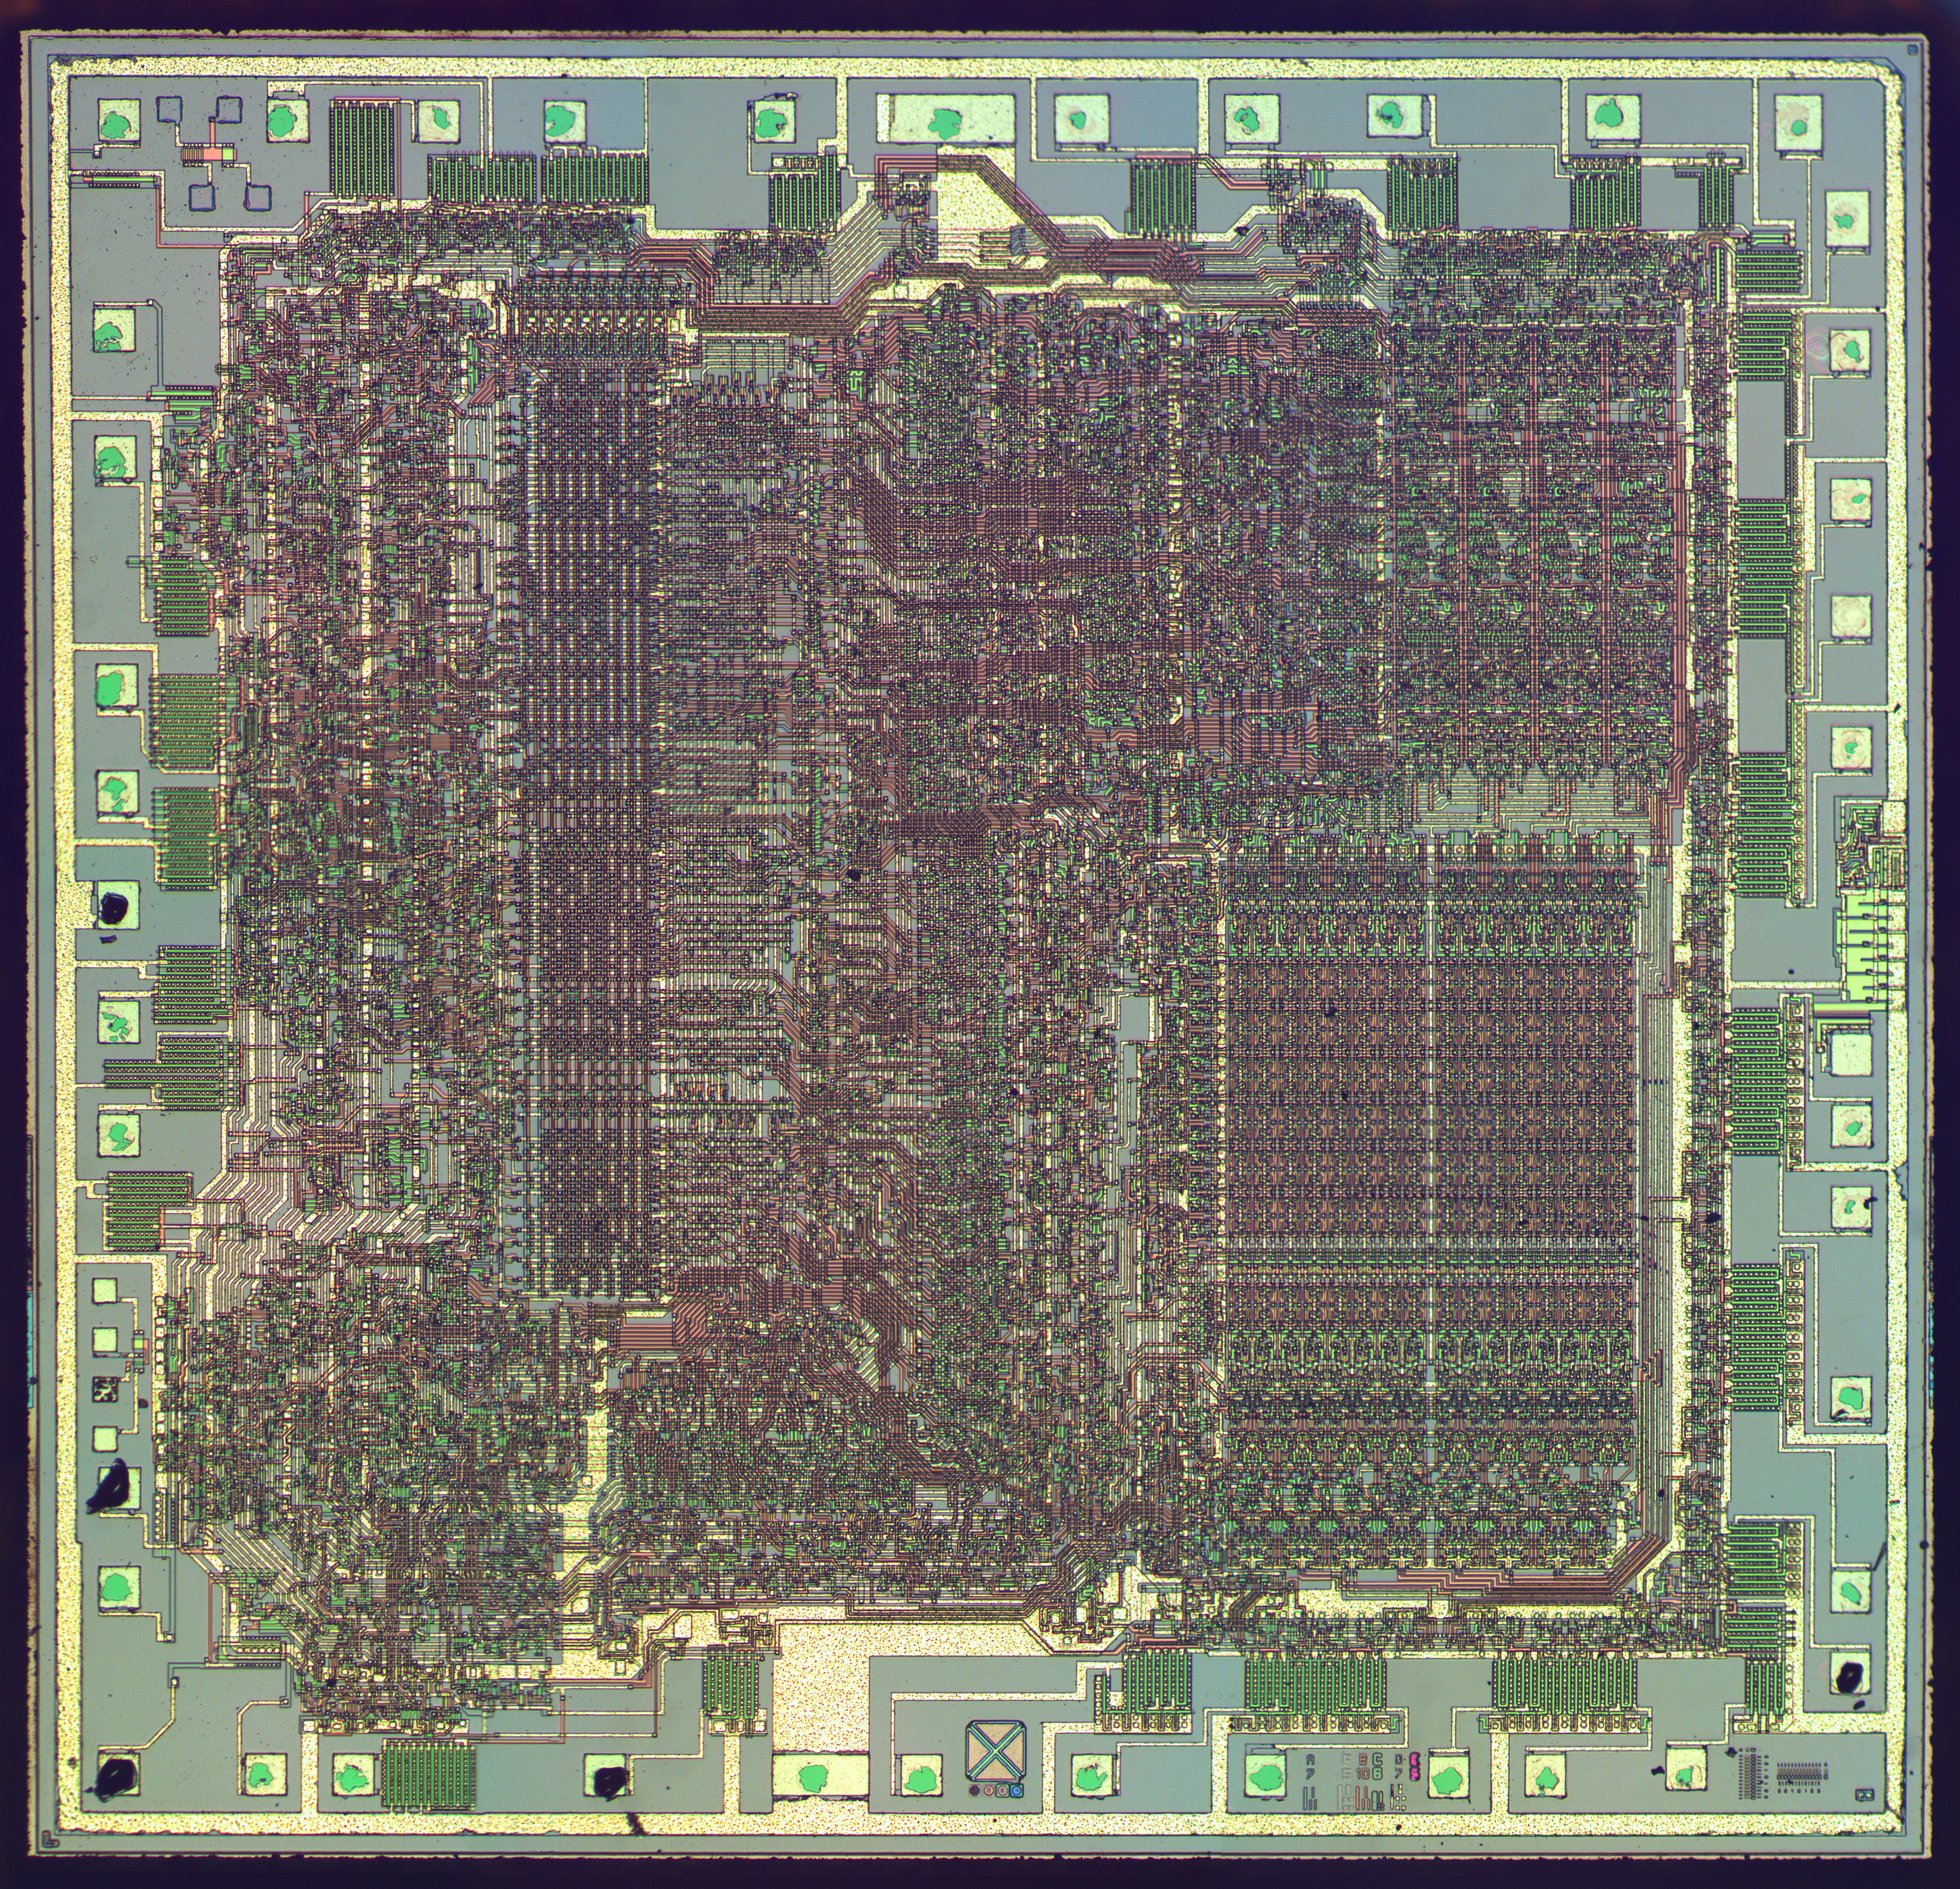 2014 04 23log Free Electronic Circuits 8085 Projects Blog Archive Puter Z80a Hd